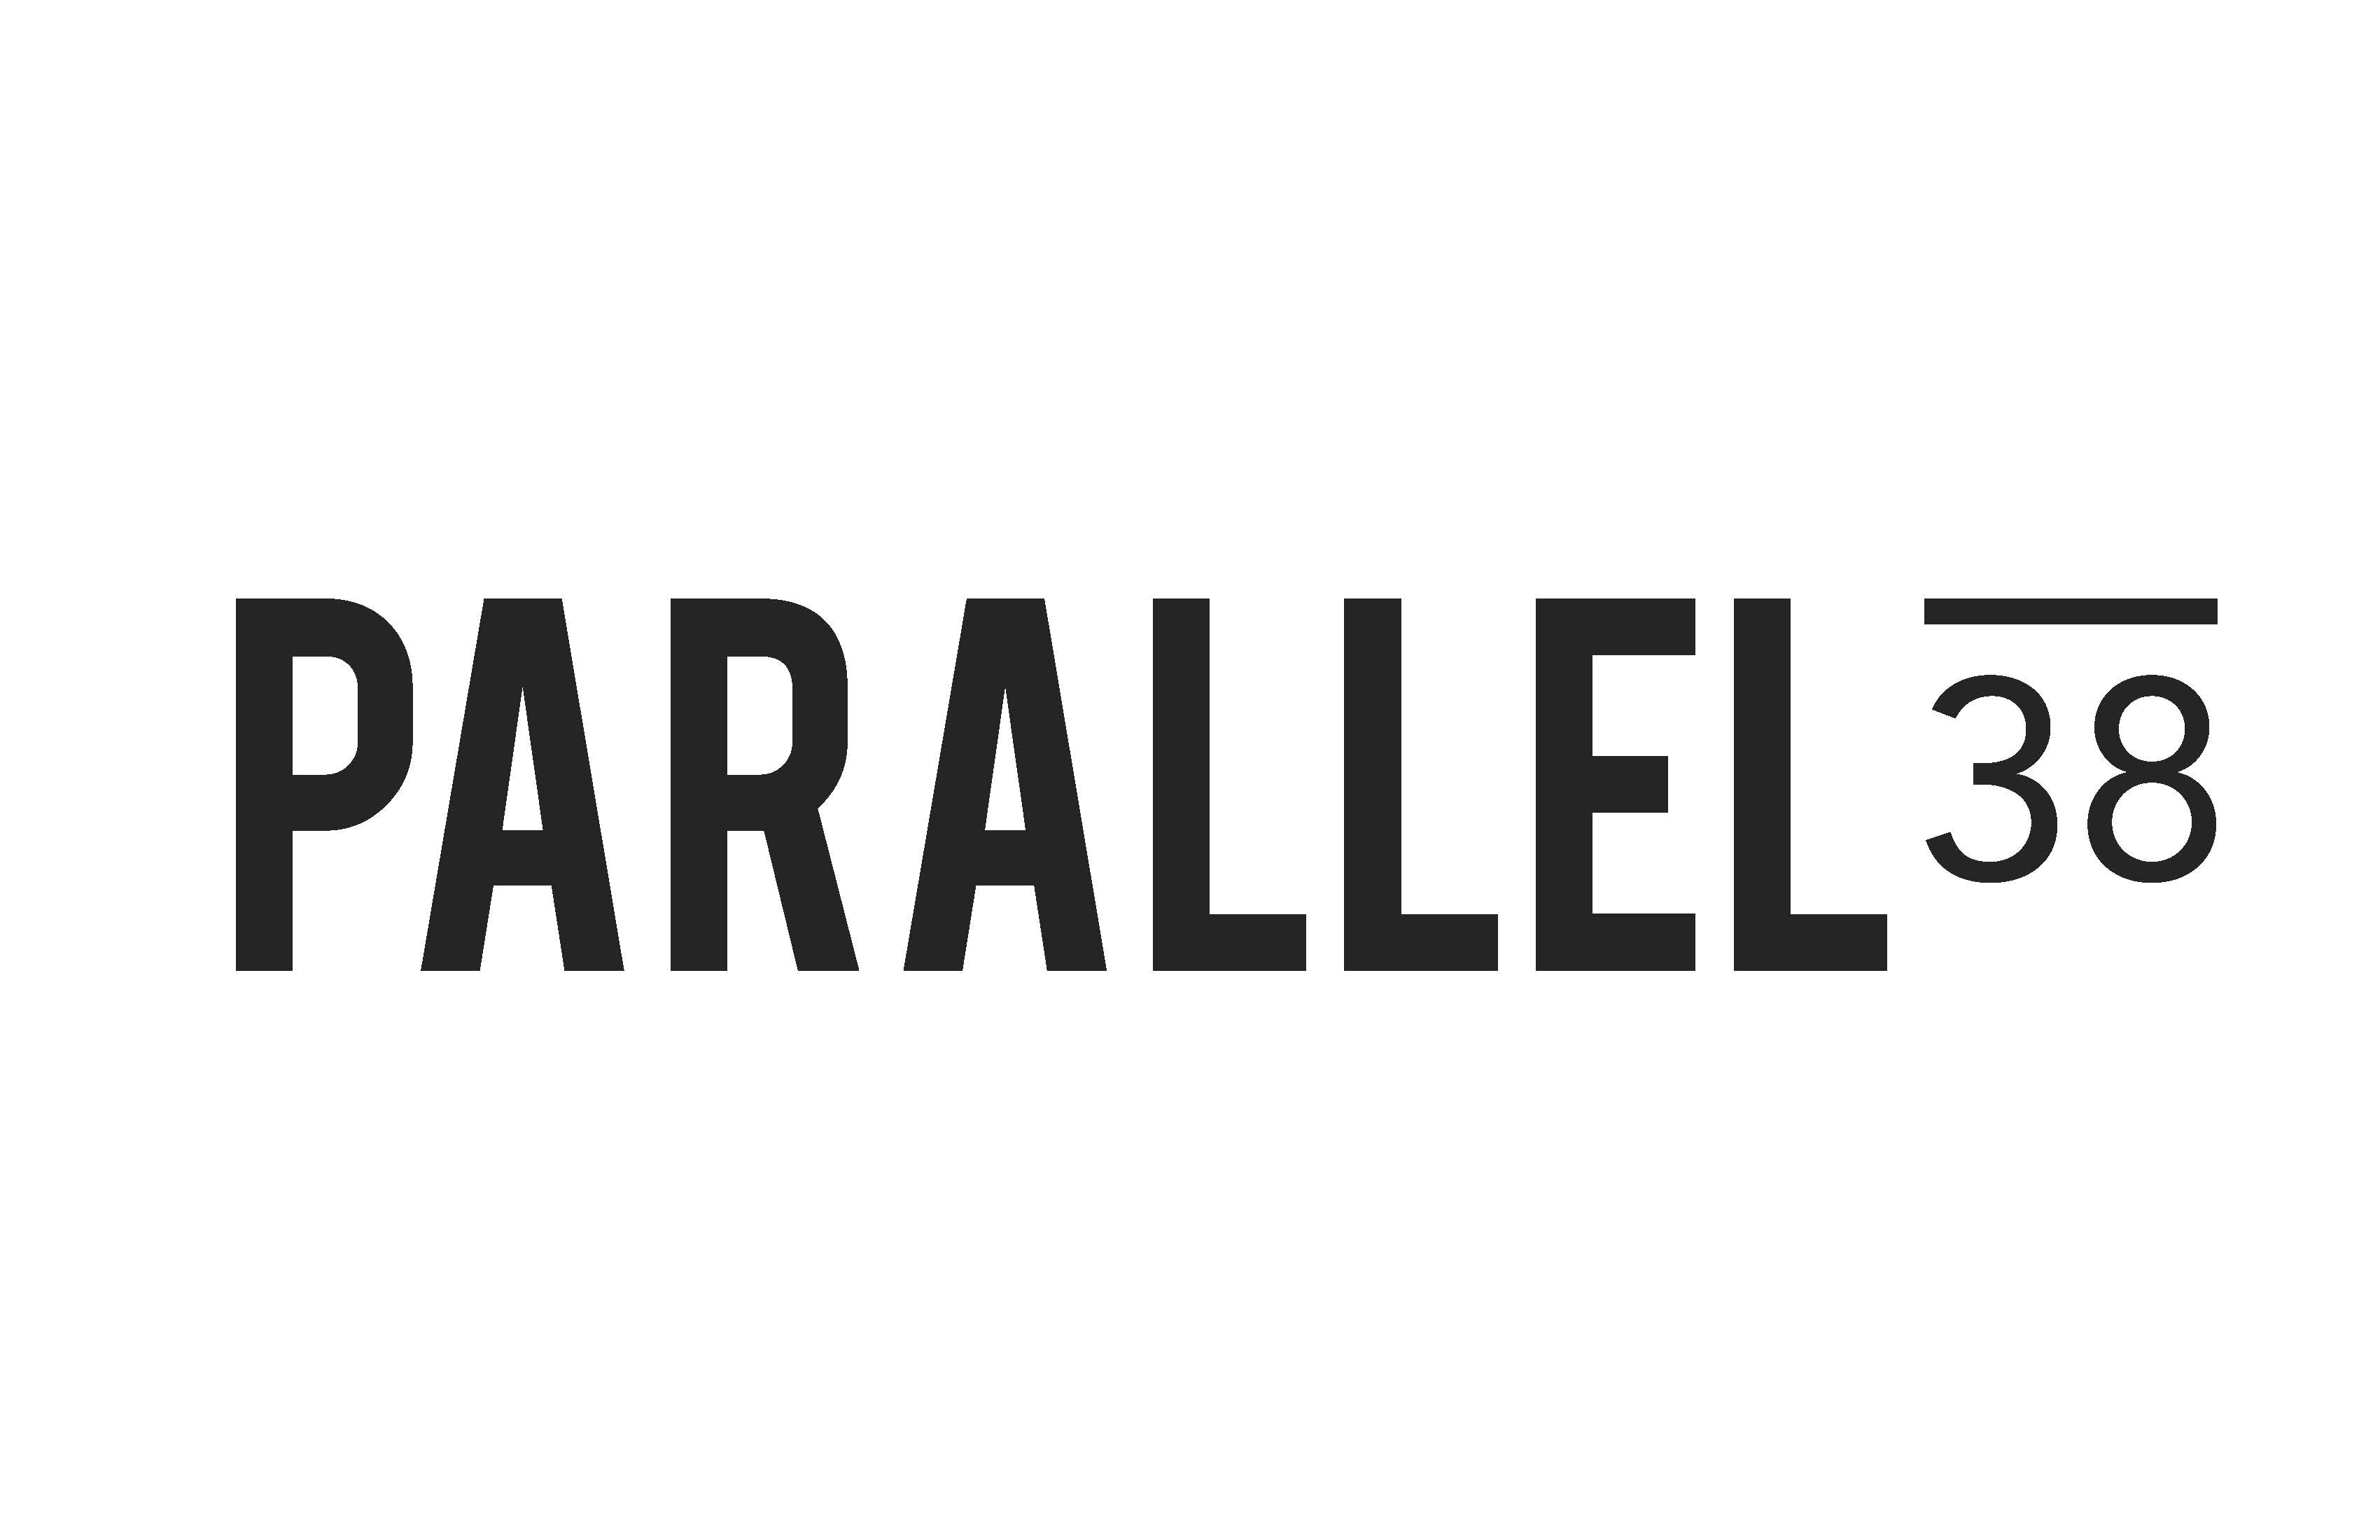 Thank You Parallel 38.